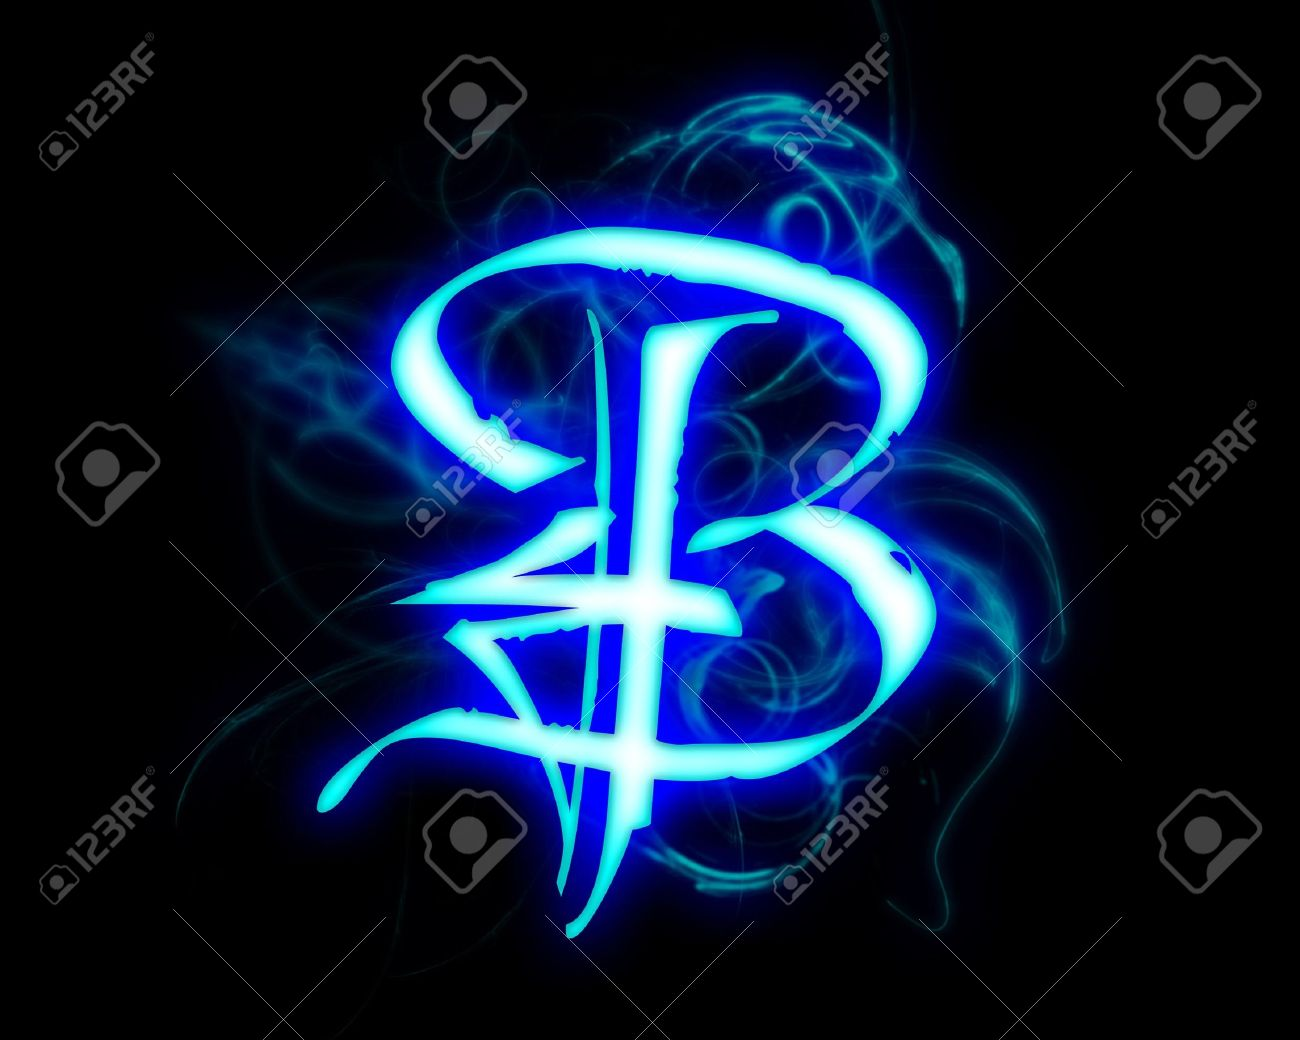 fc26378dda6 Blue flame magic font over black background. Letter B Stock Photo - 4086132